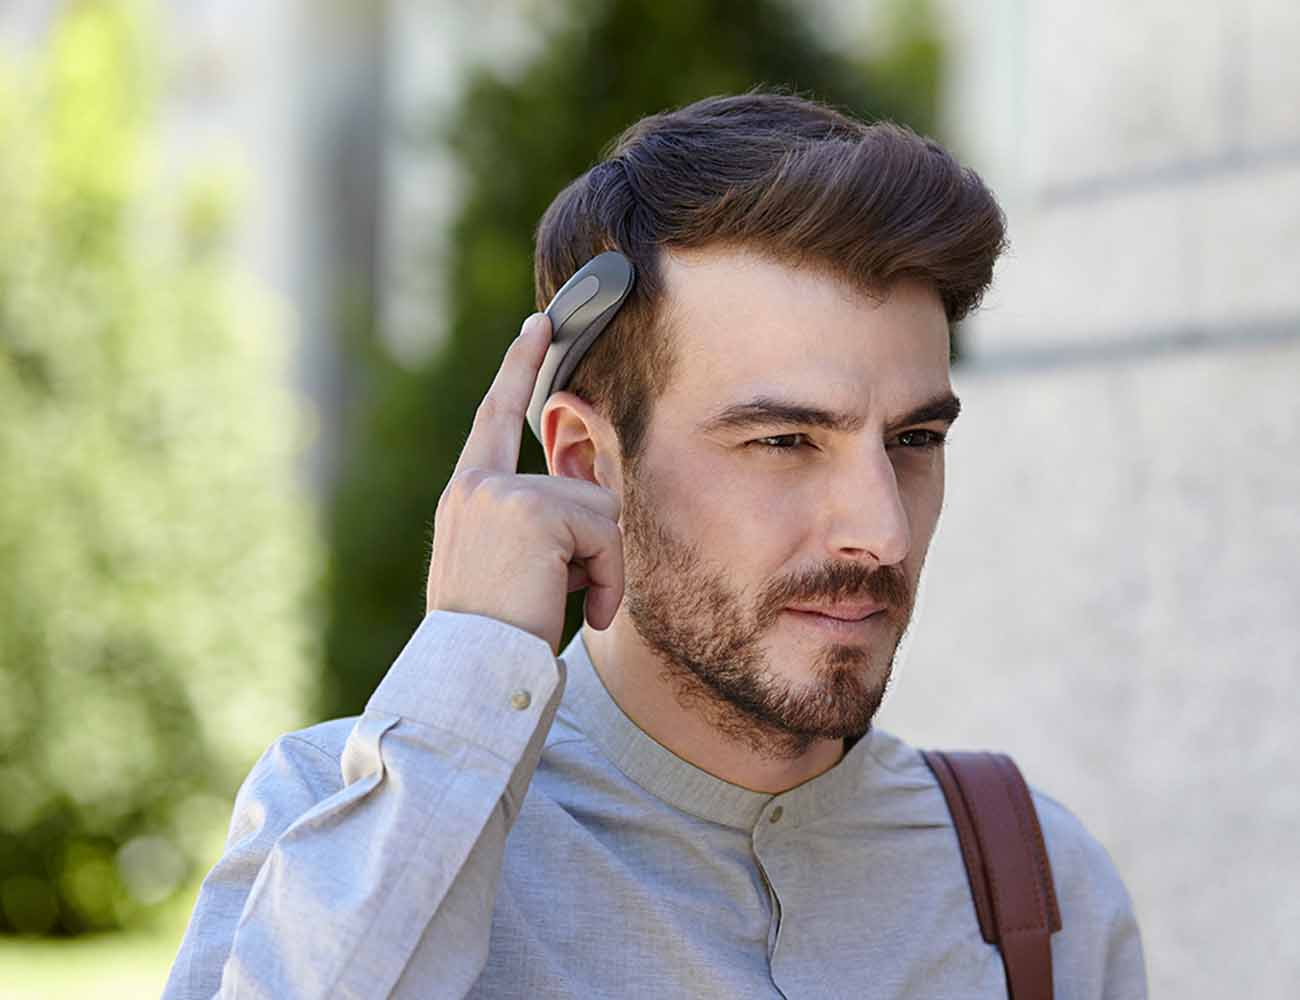 BATBAND – Delivering Acoustics Via Bone Conduction